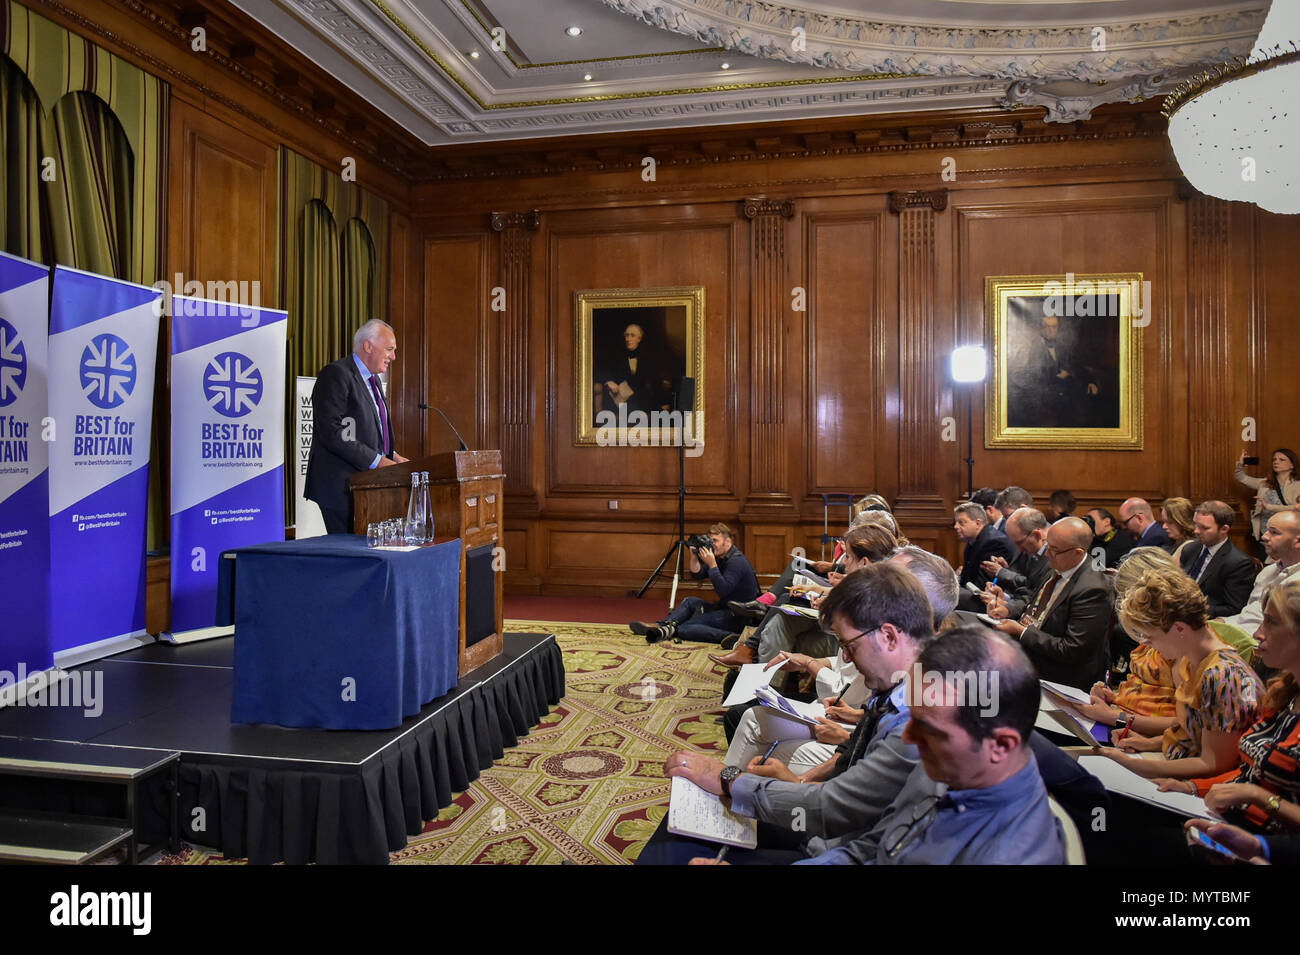 London, United Kingdom. 8 June 2018. Campaign group 'Best for Britain' hold a press conference with CEO Eloise Todd and Chairman Lord Malloch-Brown to launch their roadmap to stopping Brexit. Credit: Peter Manning/Alamy Live News - Stock Image